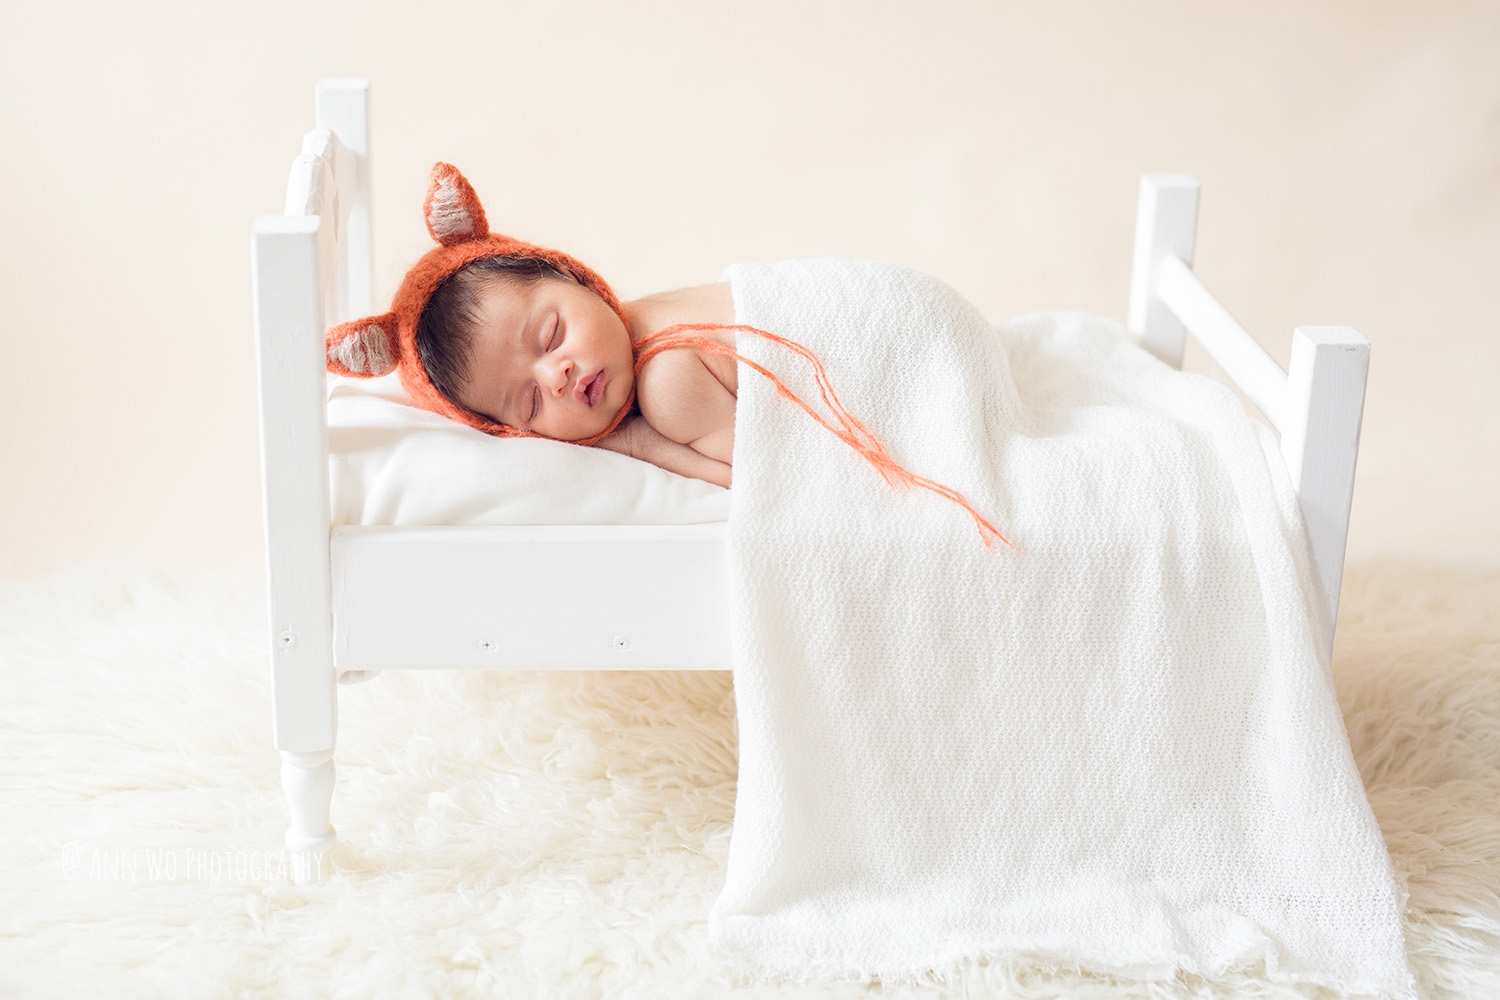 058-newborn-photography-at-home-ann-wo-london-24.JPG